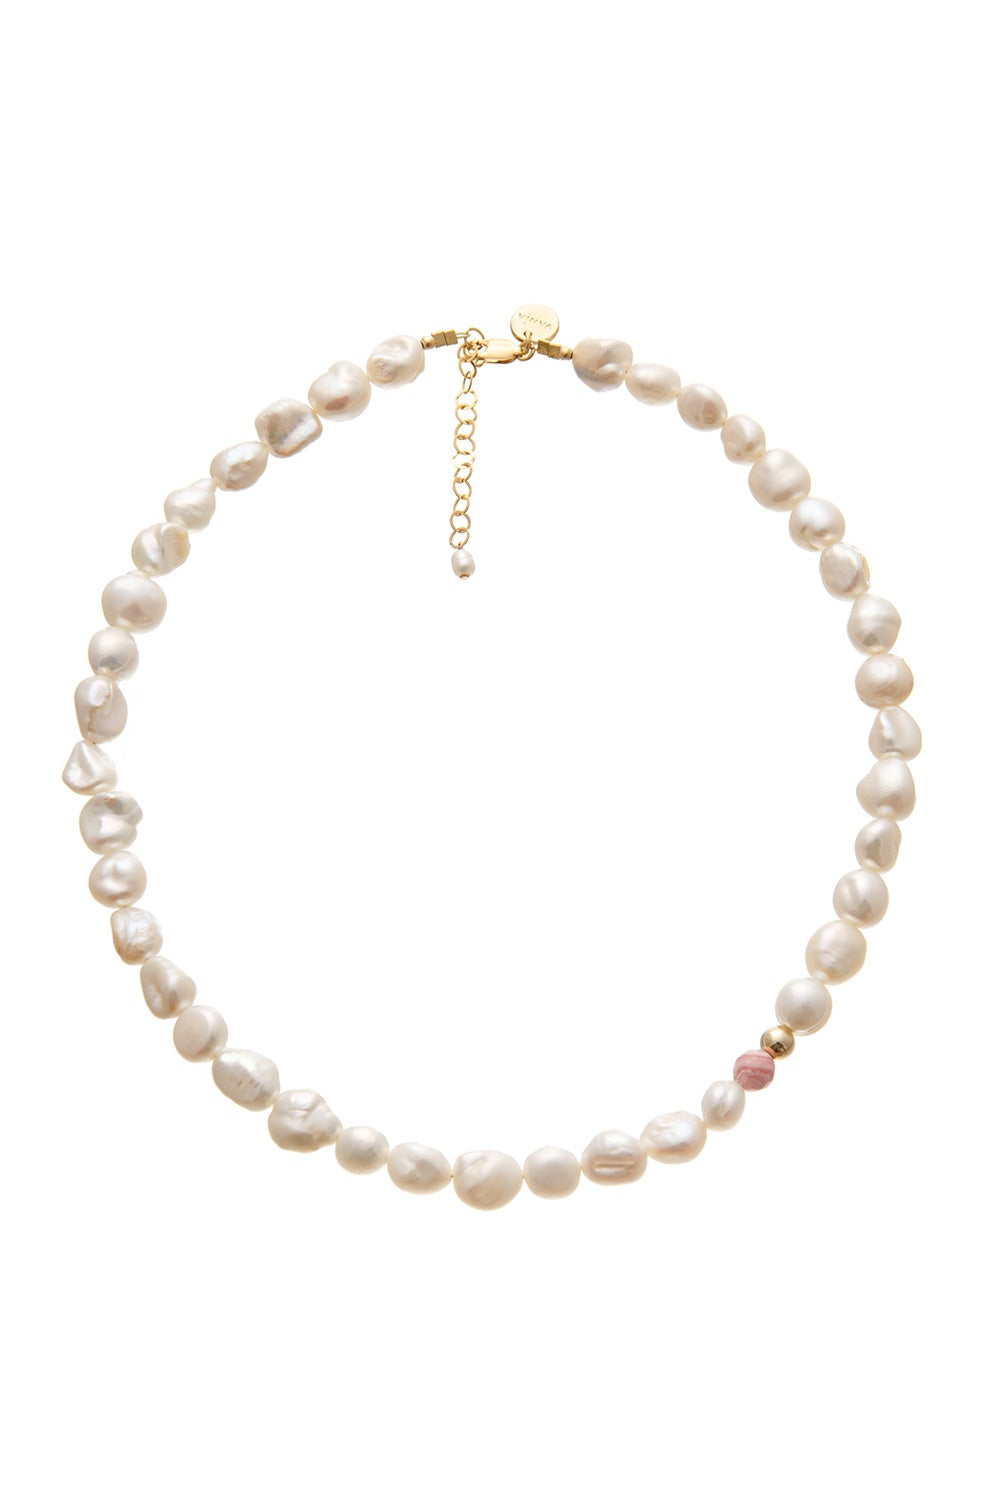 Vania Large Pearl with Rhodochrosite Necklace